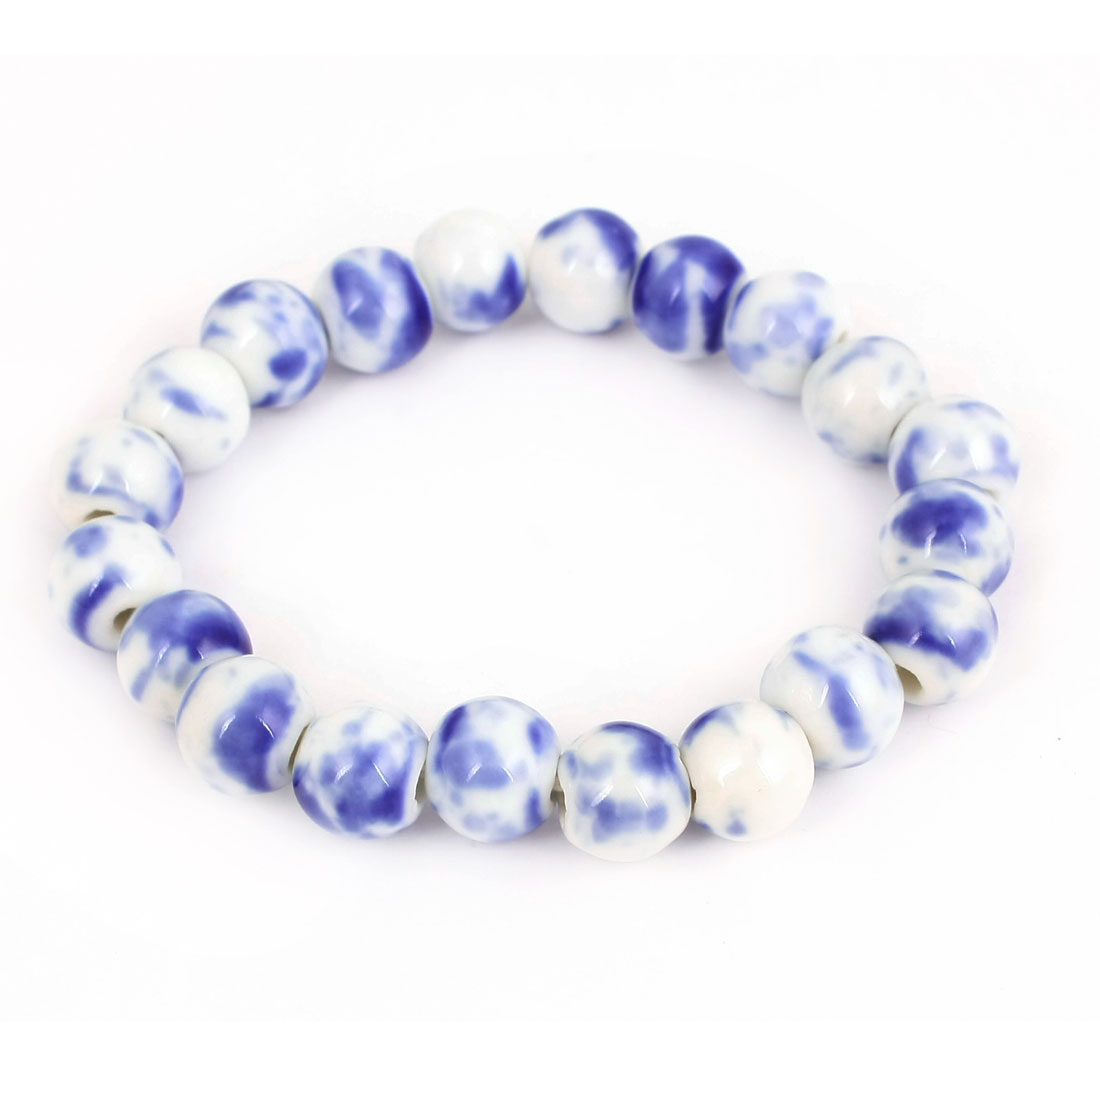 Chinese Style Wrist Decor White Blue Ceramic Elastic Bracelet for Women Men